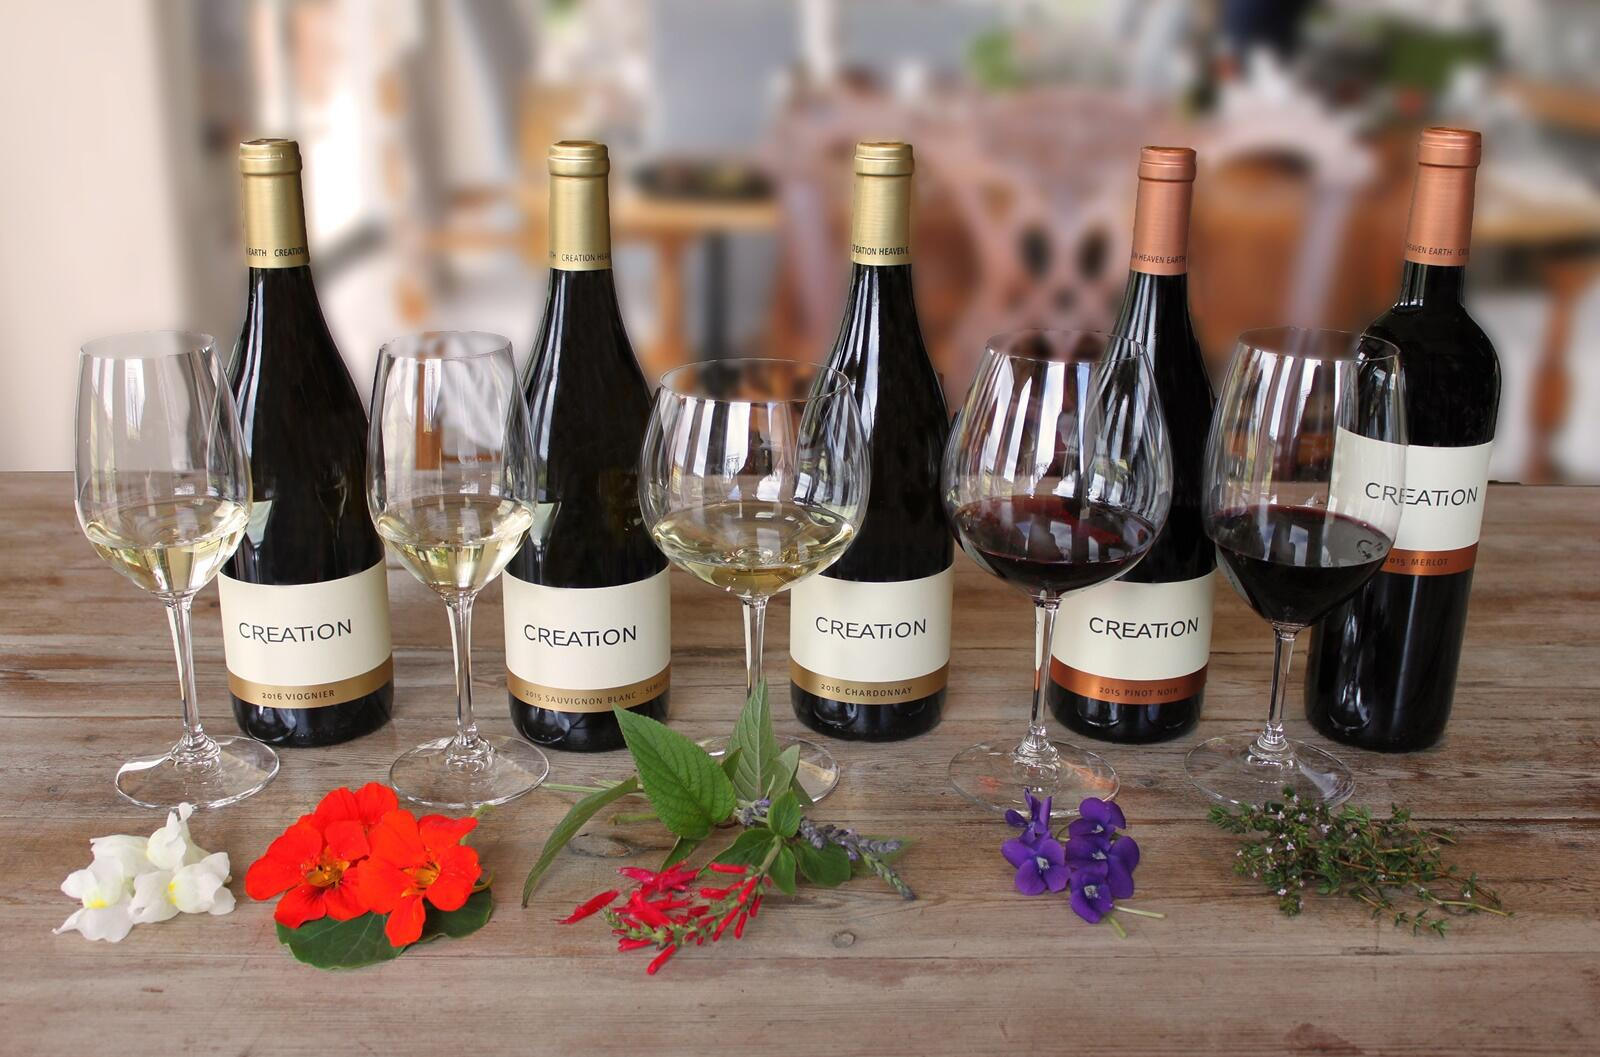 A variety of wines with their paired flowers